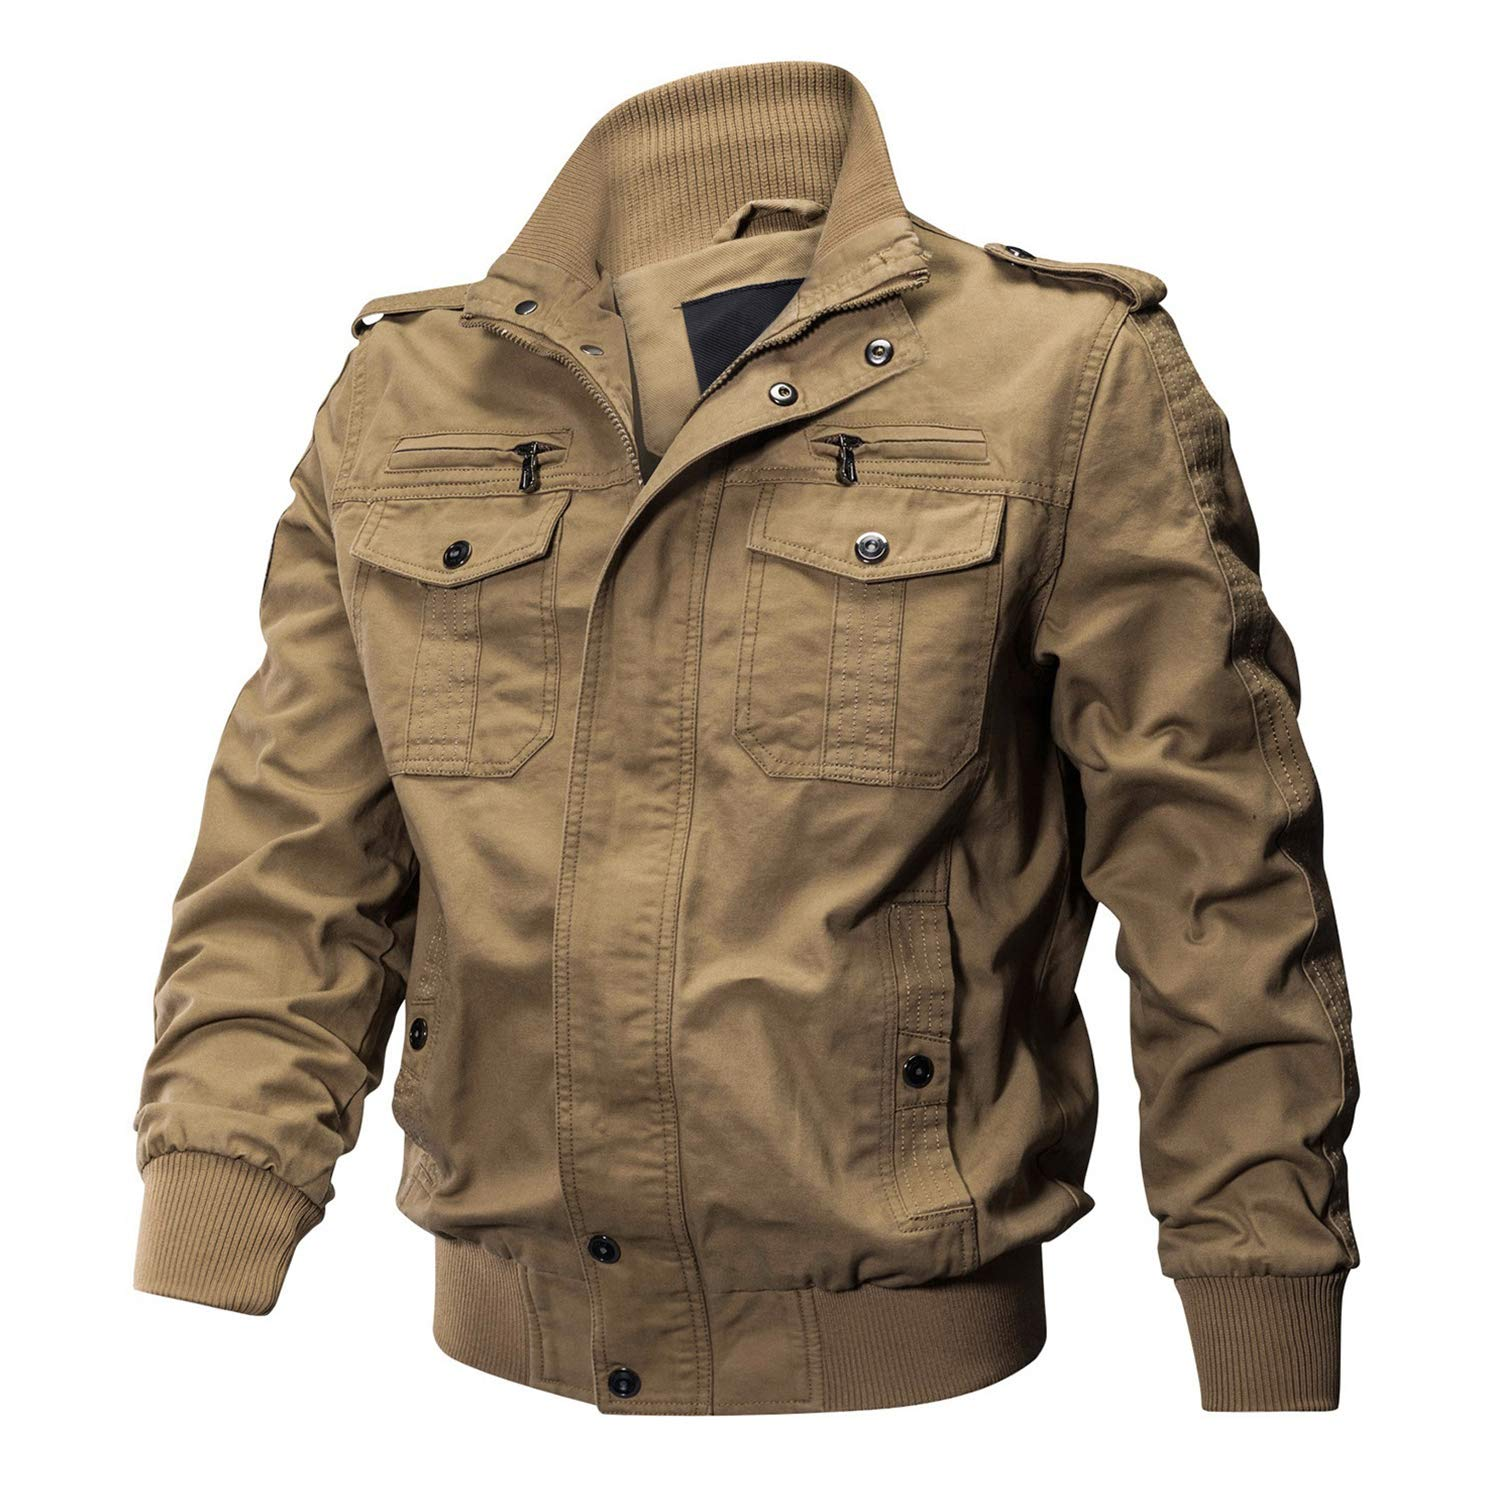 c32f5b536bd50 Galleon - CRYSULLY Men s Bomber Flight Jacket With Patches Cargo Cotton  Utility Full Zip Military Jacket Khaki